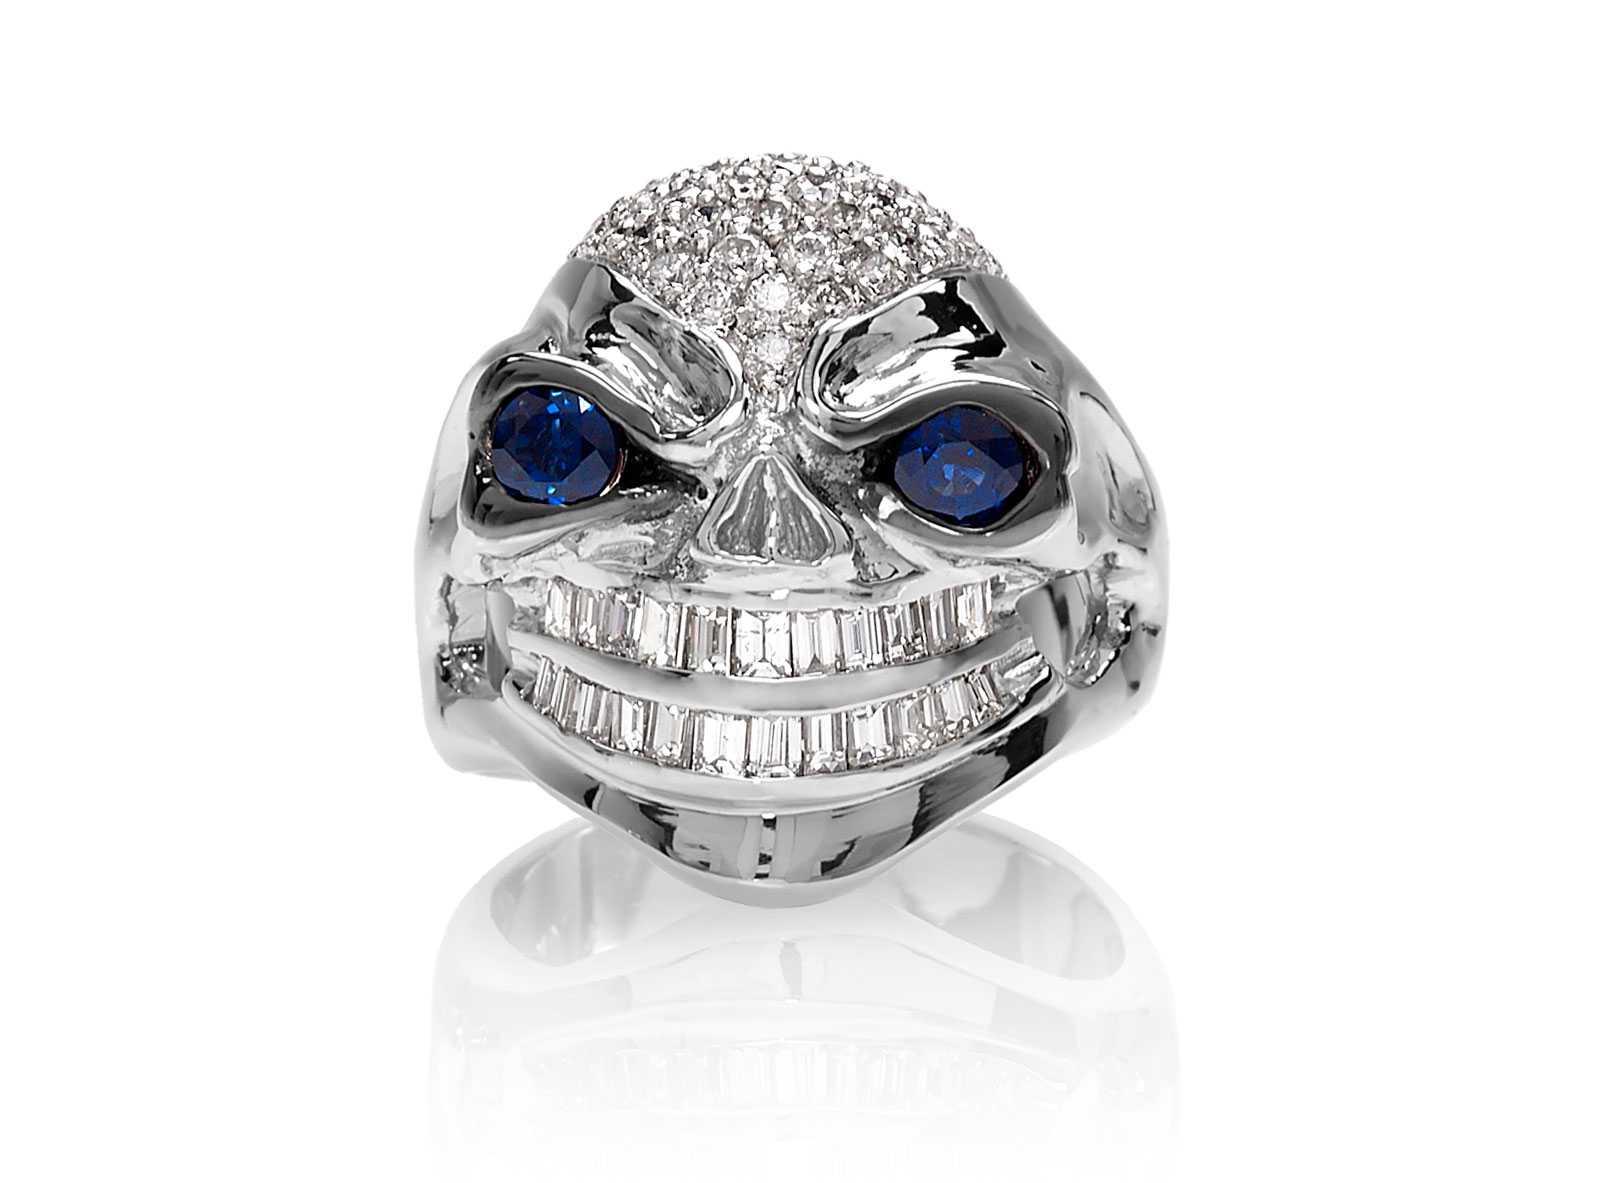 princess caravaggio platdbld engagement ring masters blue diamond p white ct art platdbd platinum and jewelry product